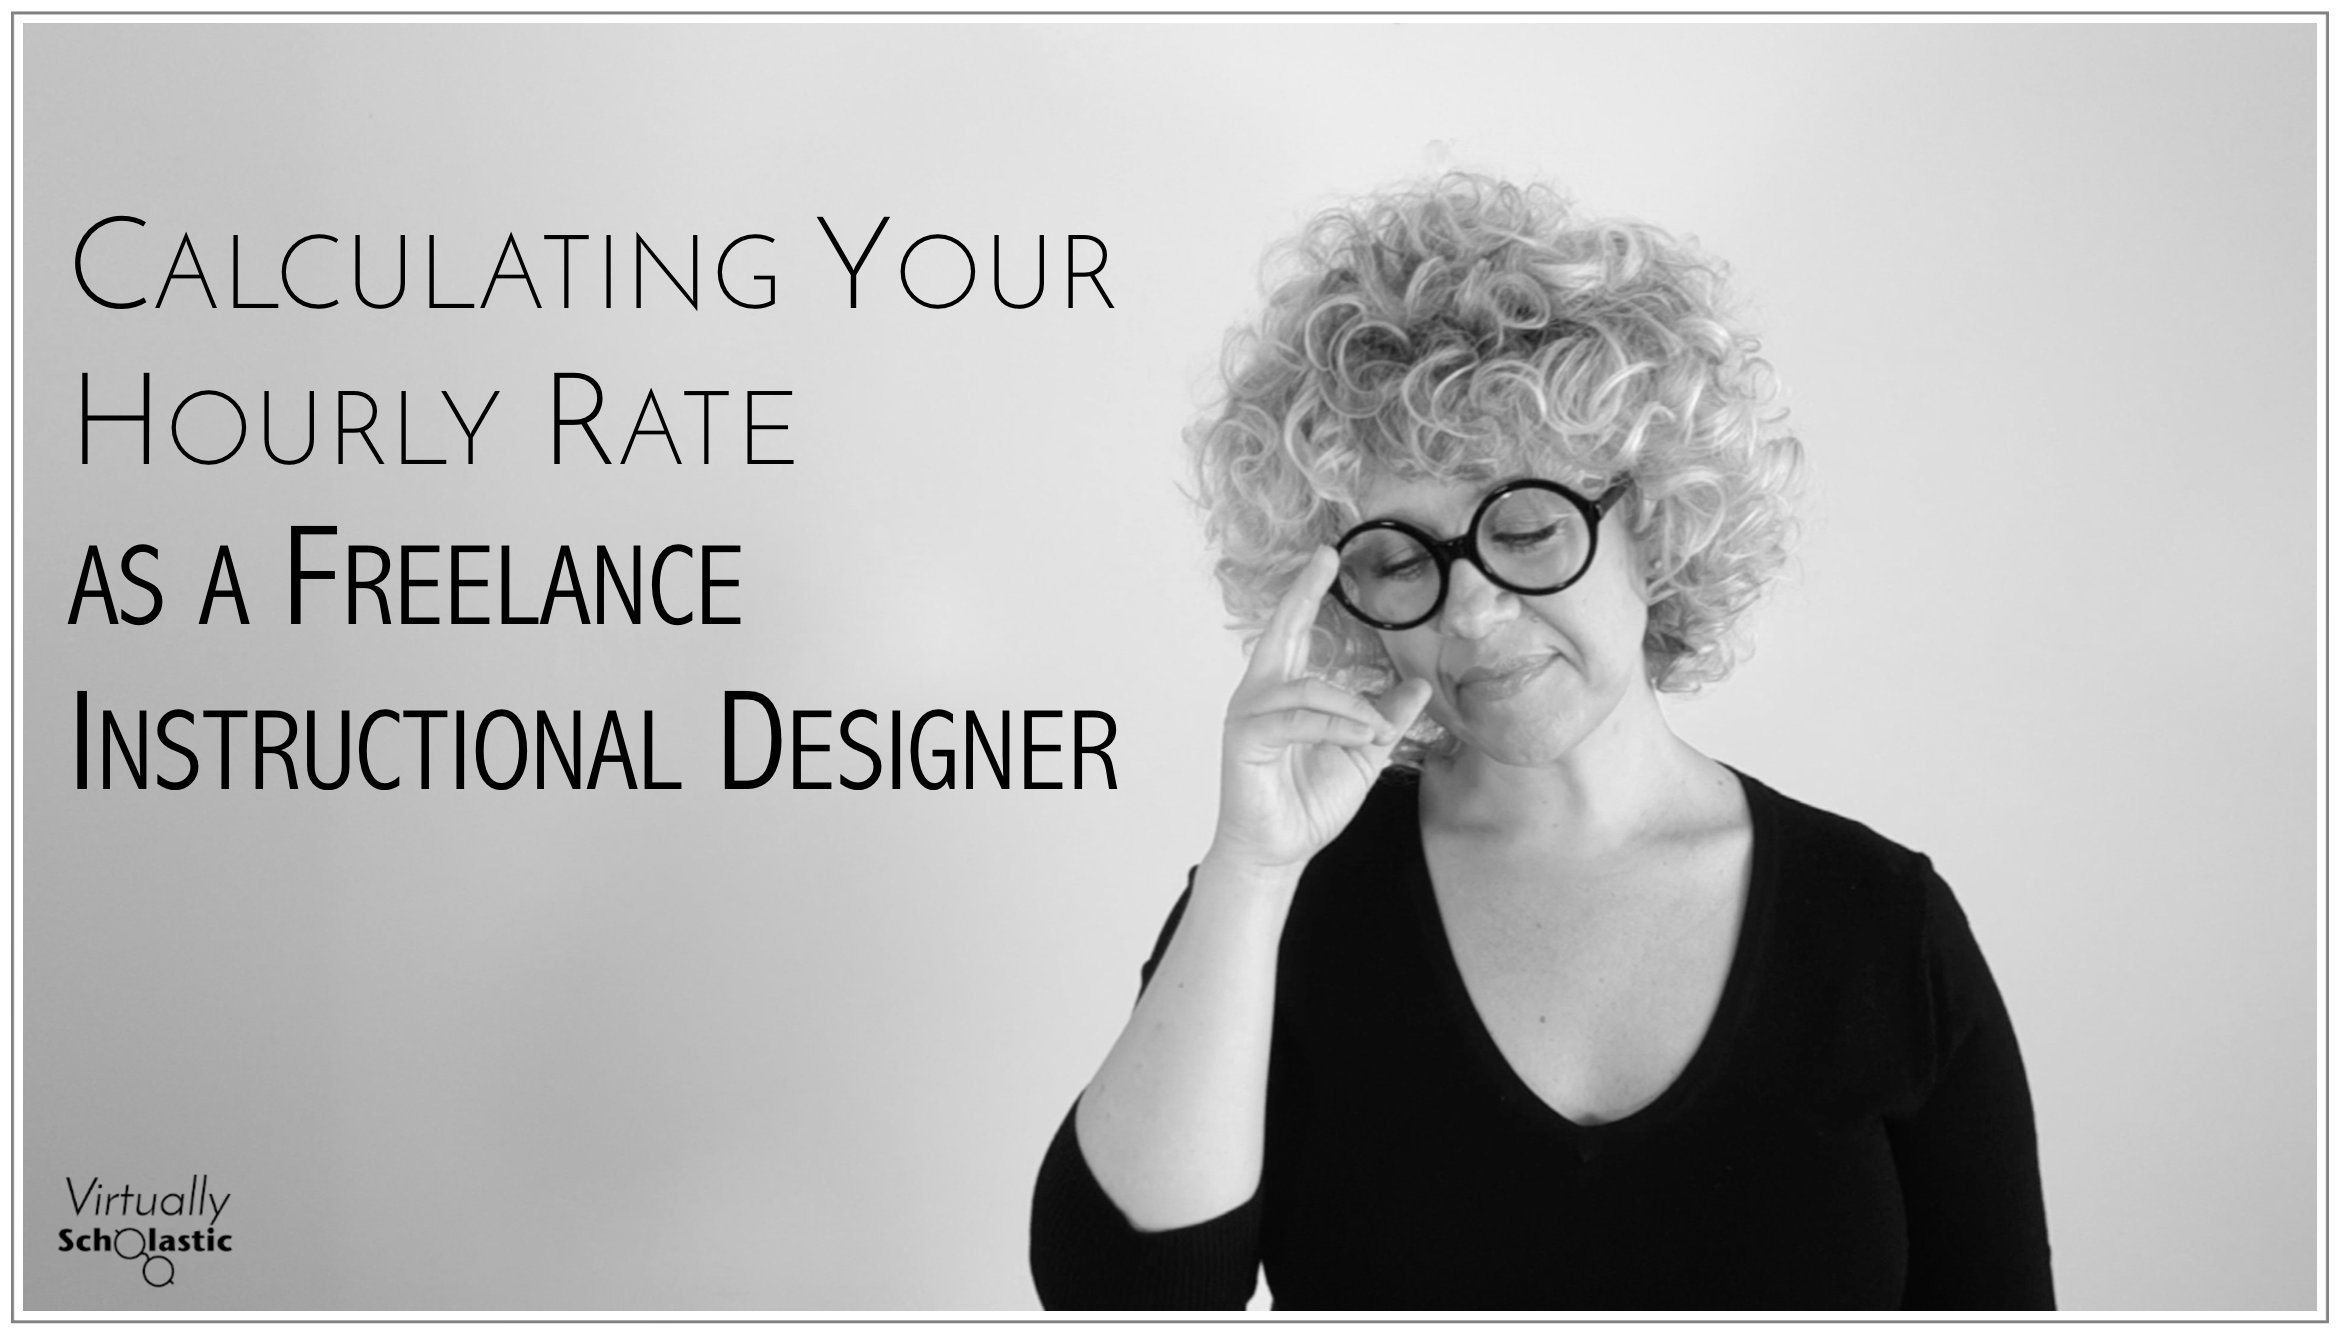 Calculating Your Hourly Rate As A Freelance Instructional Designer